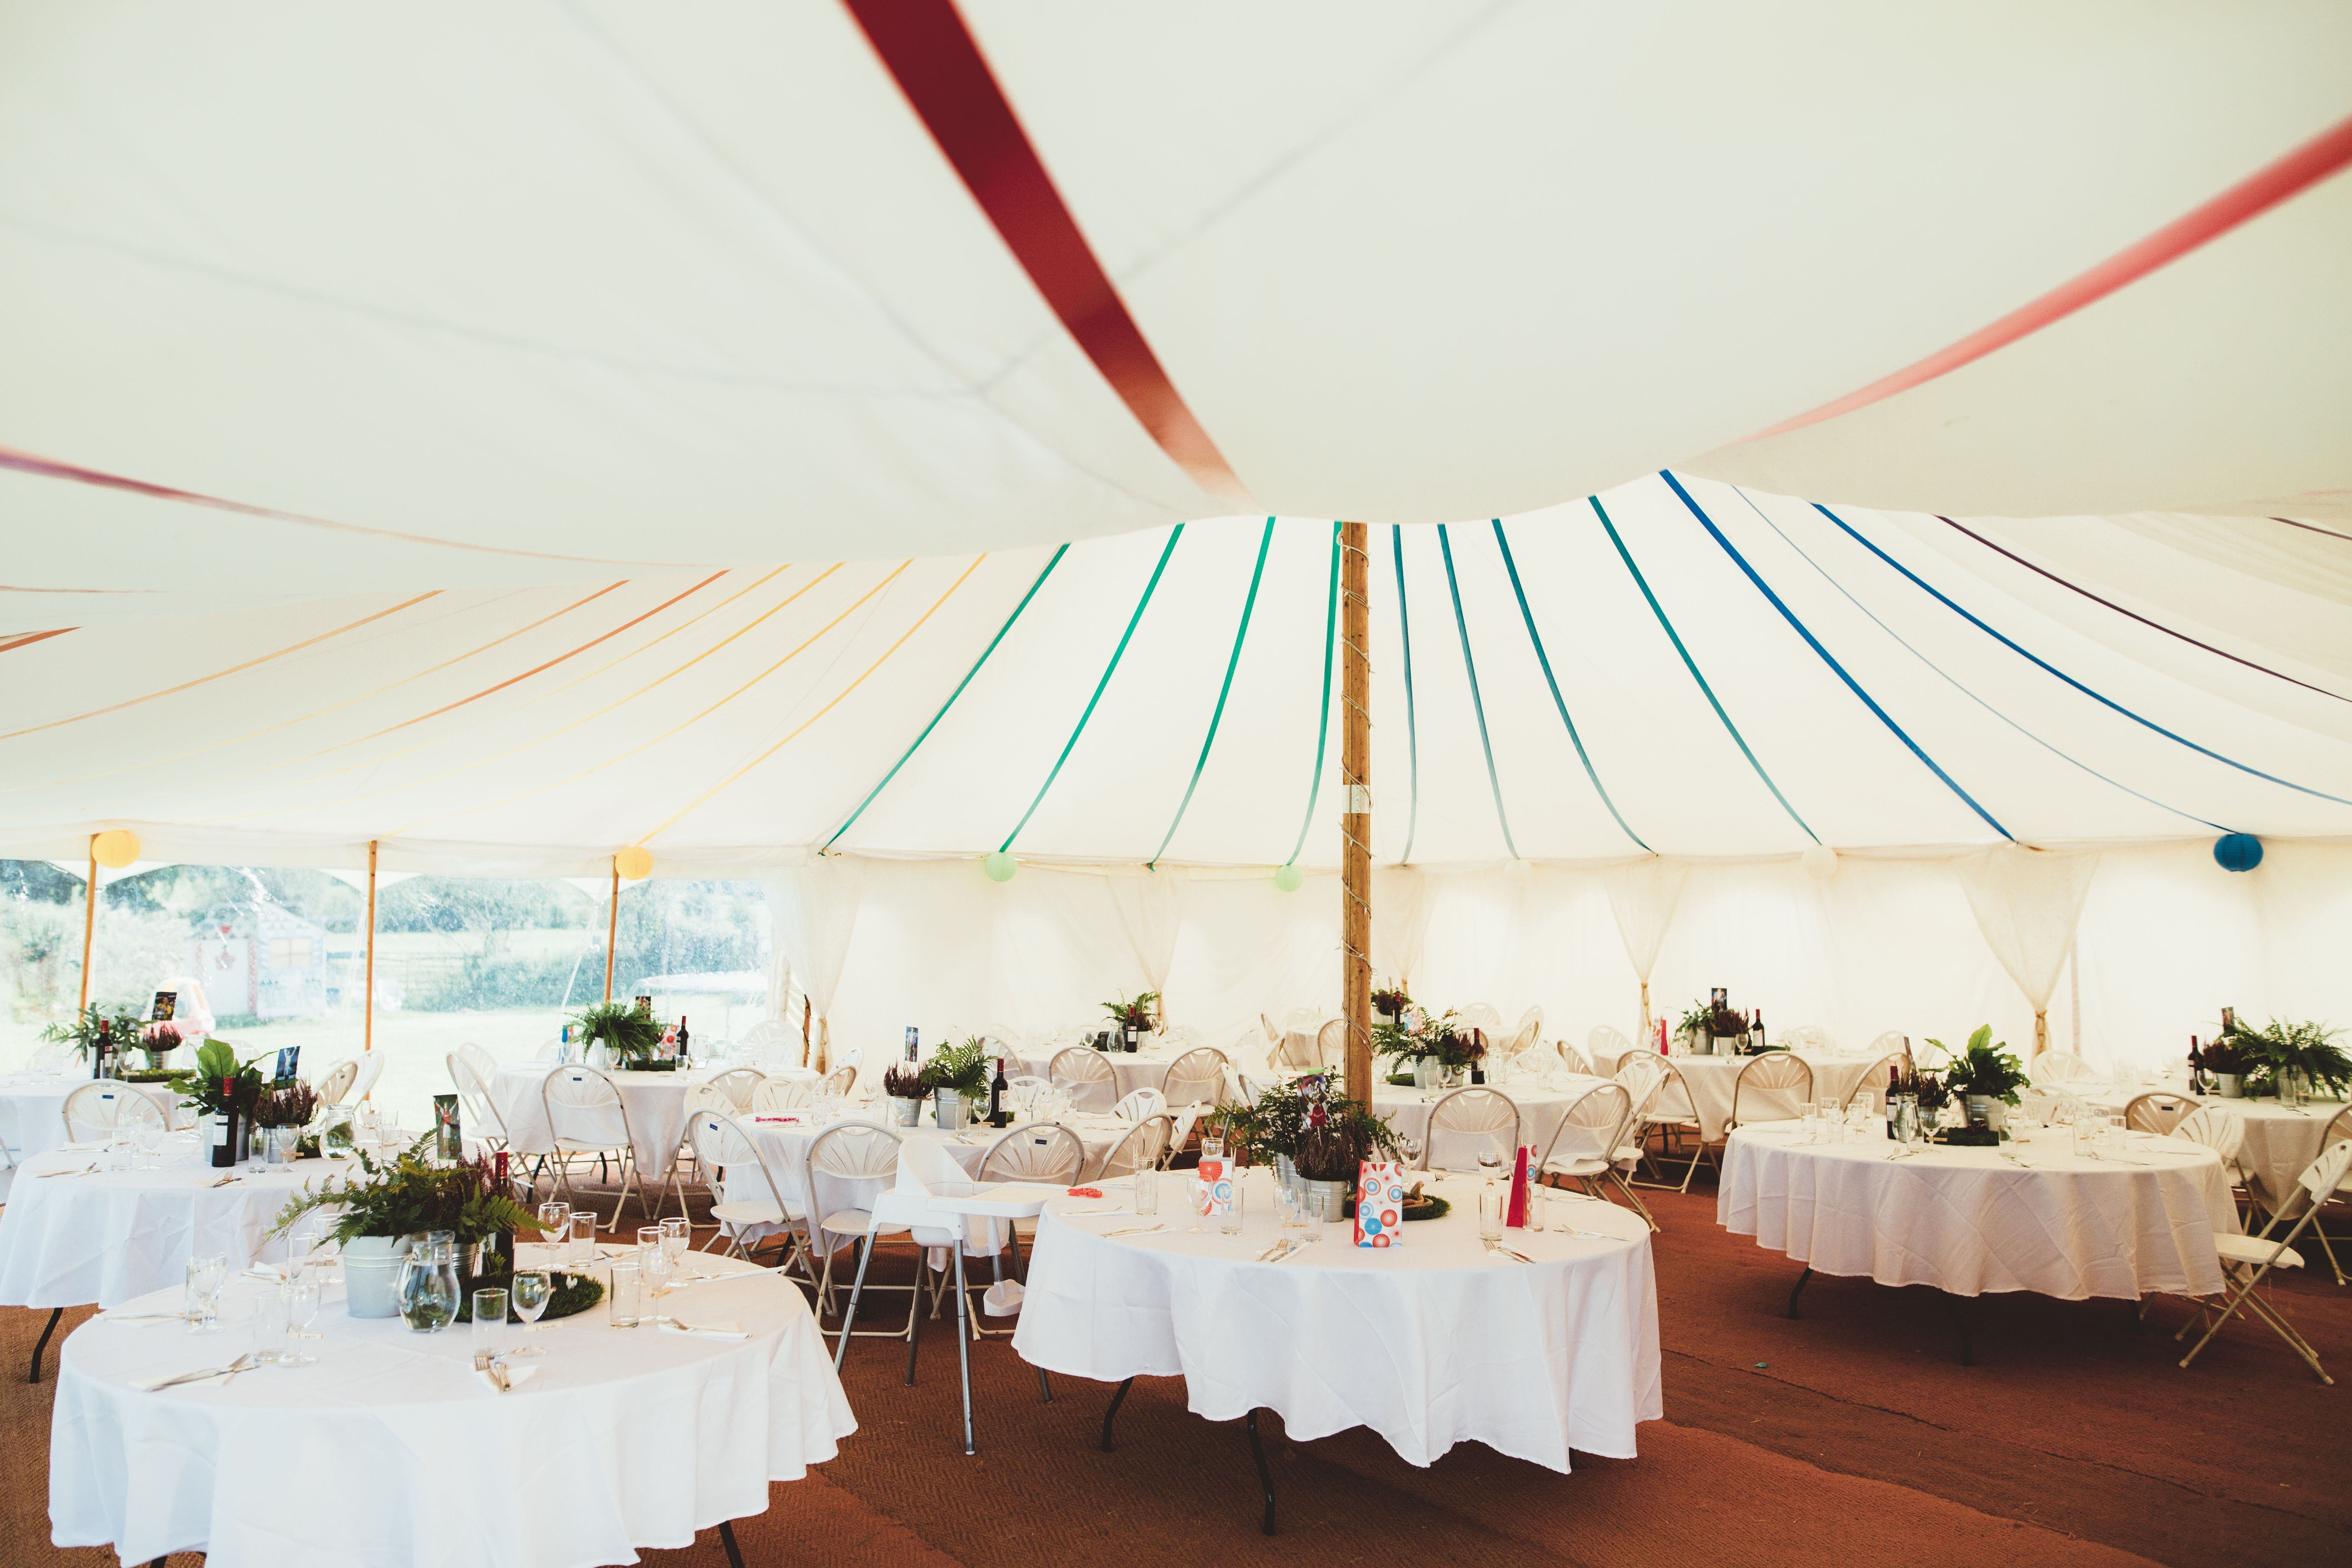 Our Oyster Pearl Tent | { Our Oyster Pearl Tent } | Pinterest ...